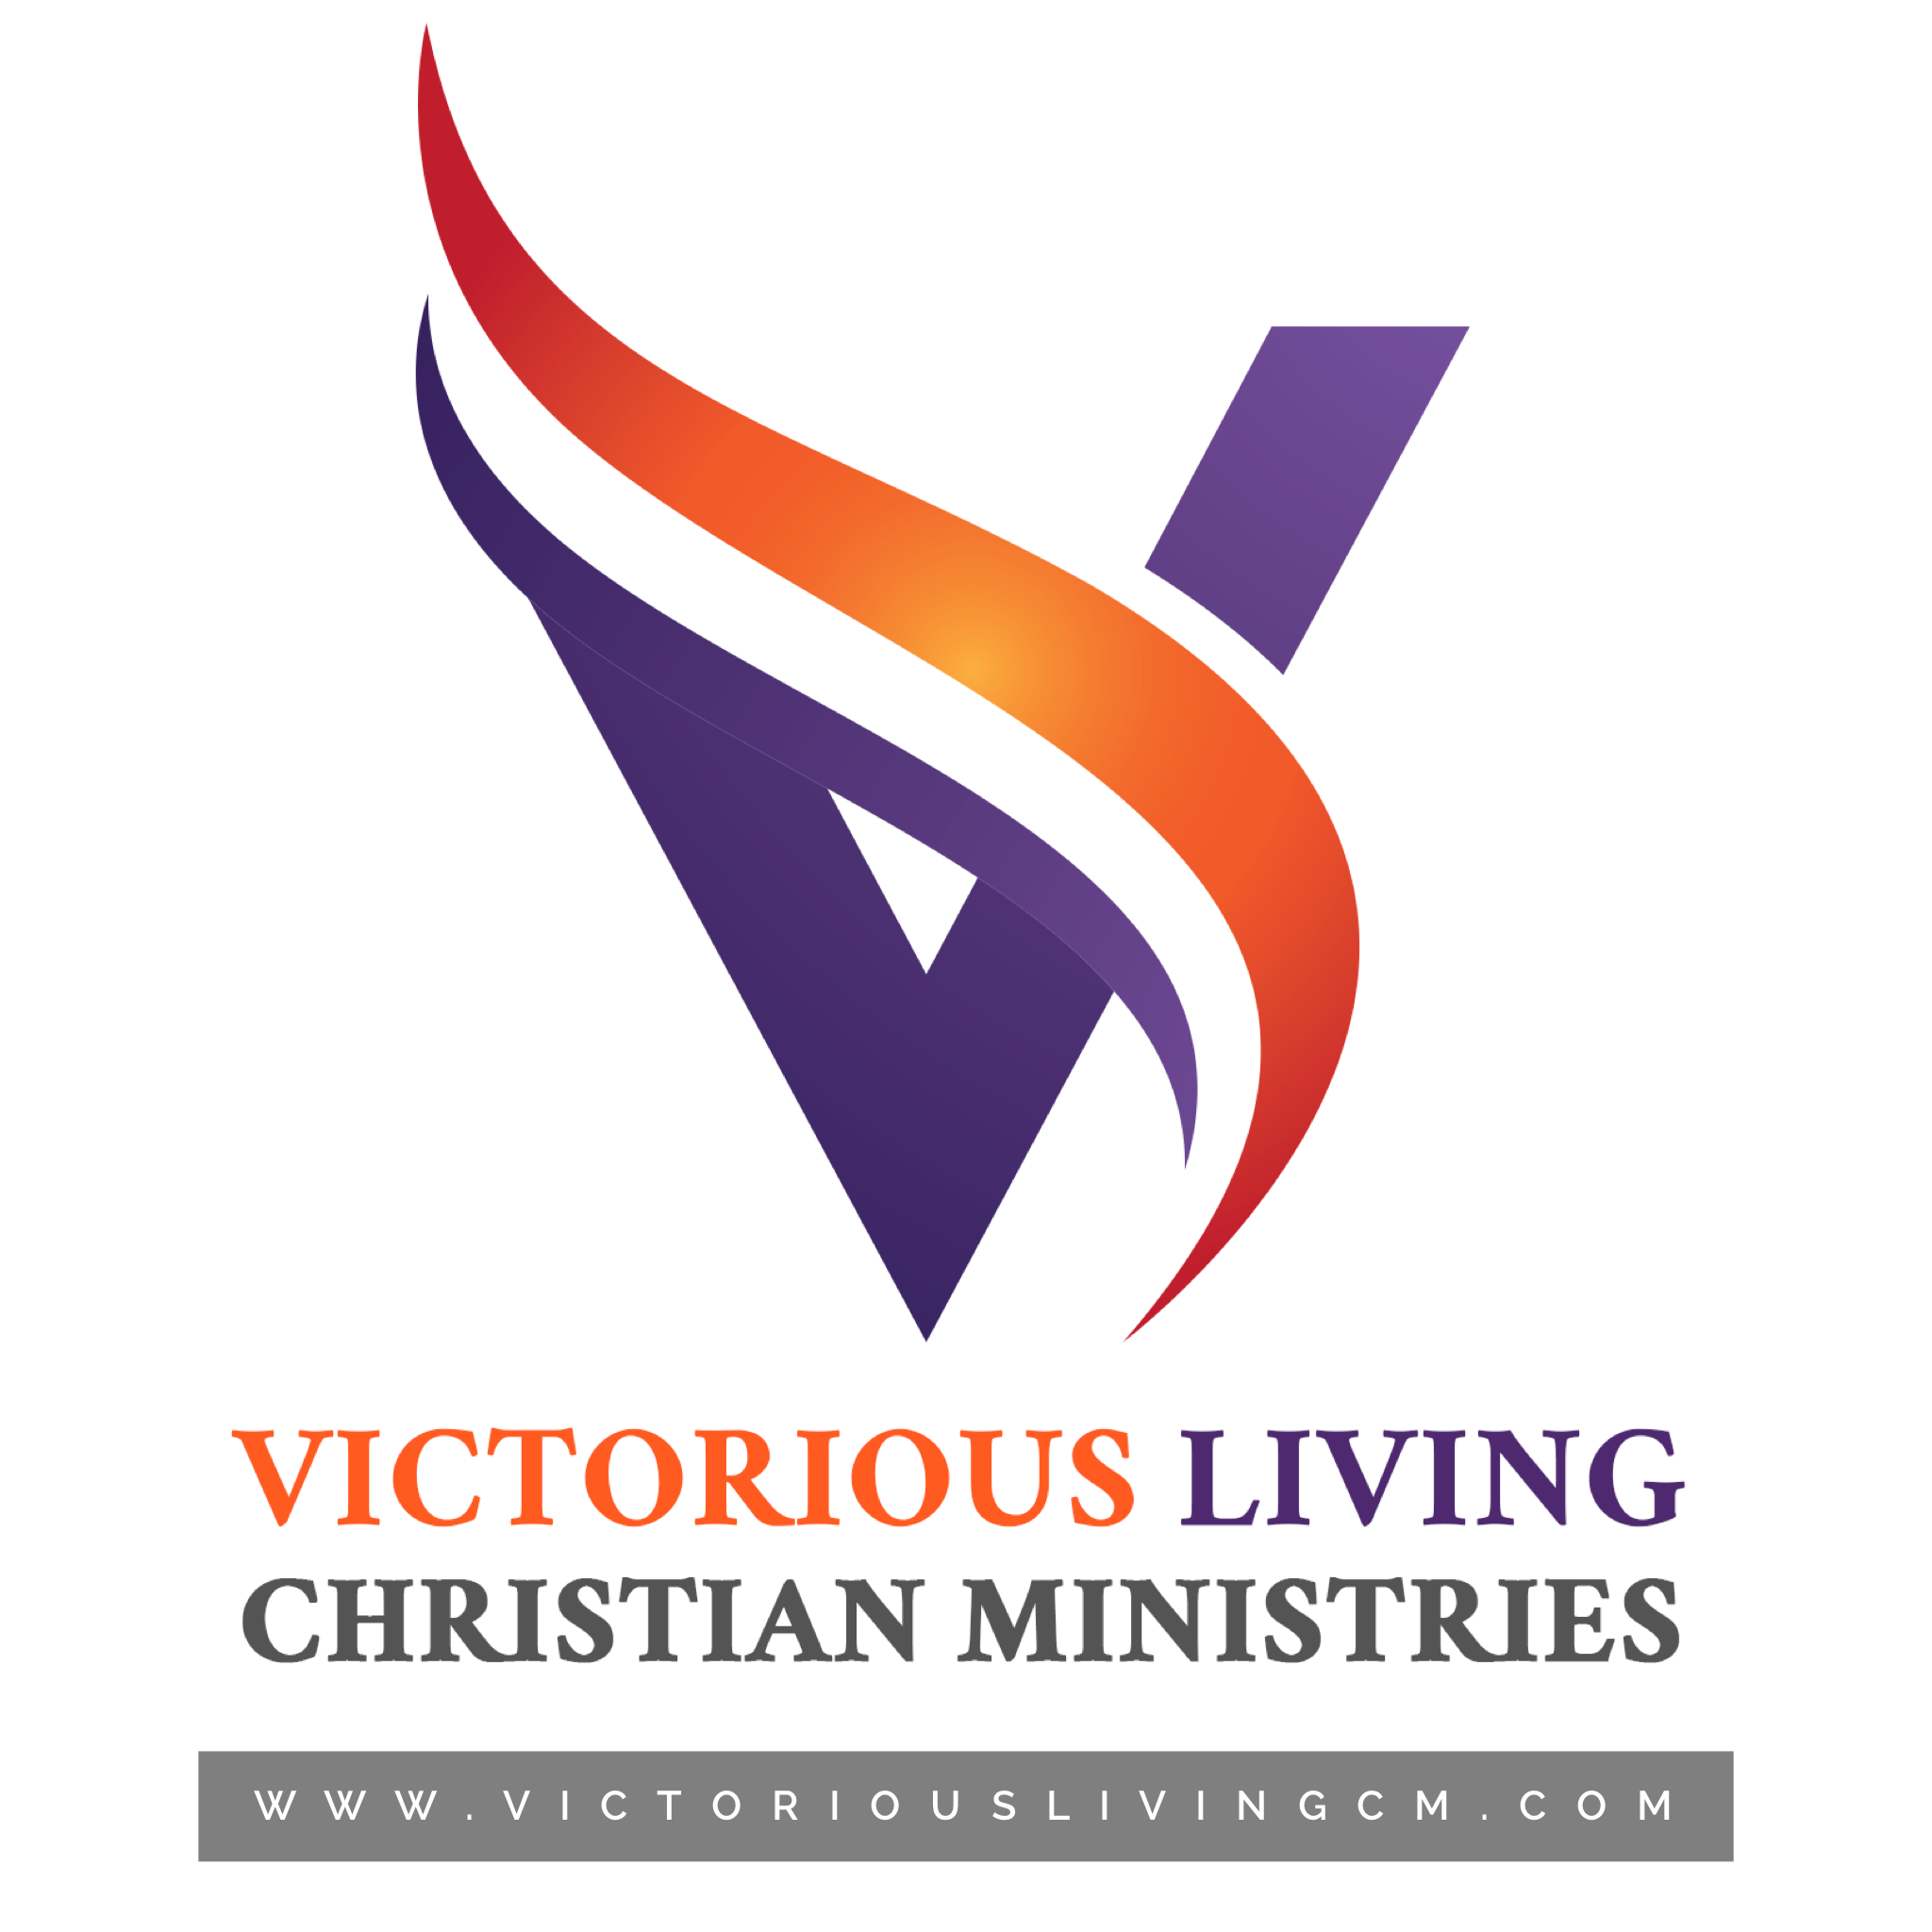 Victorious Living Christian Ministries